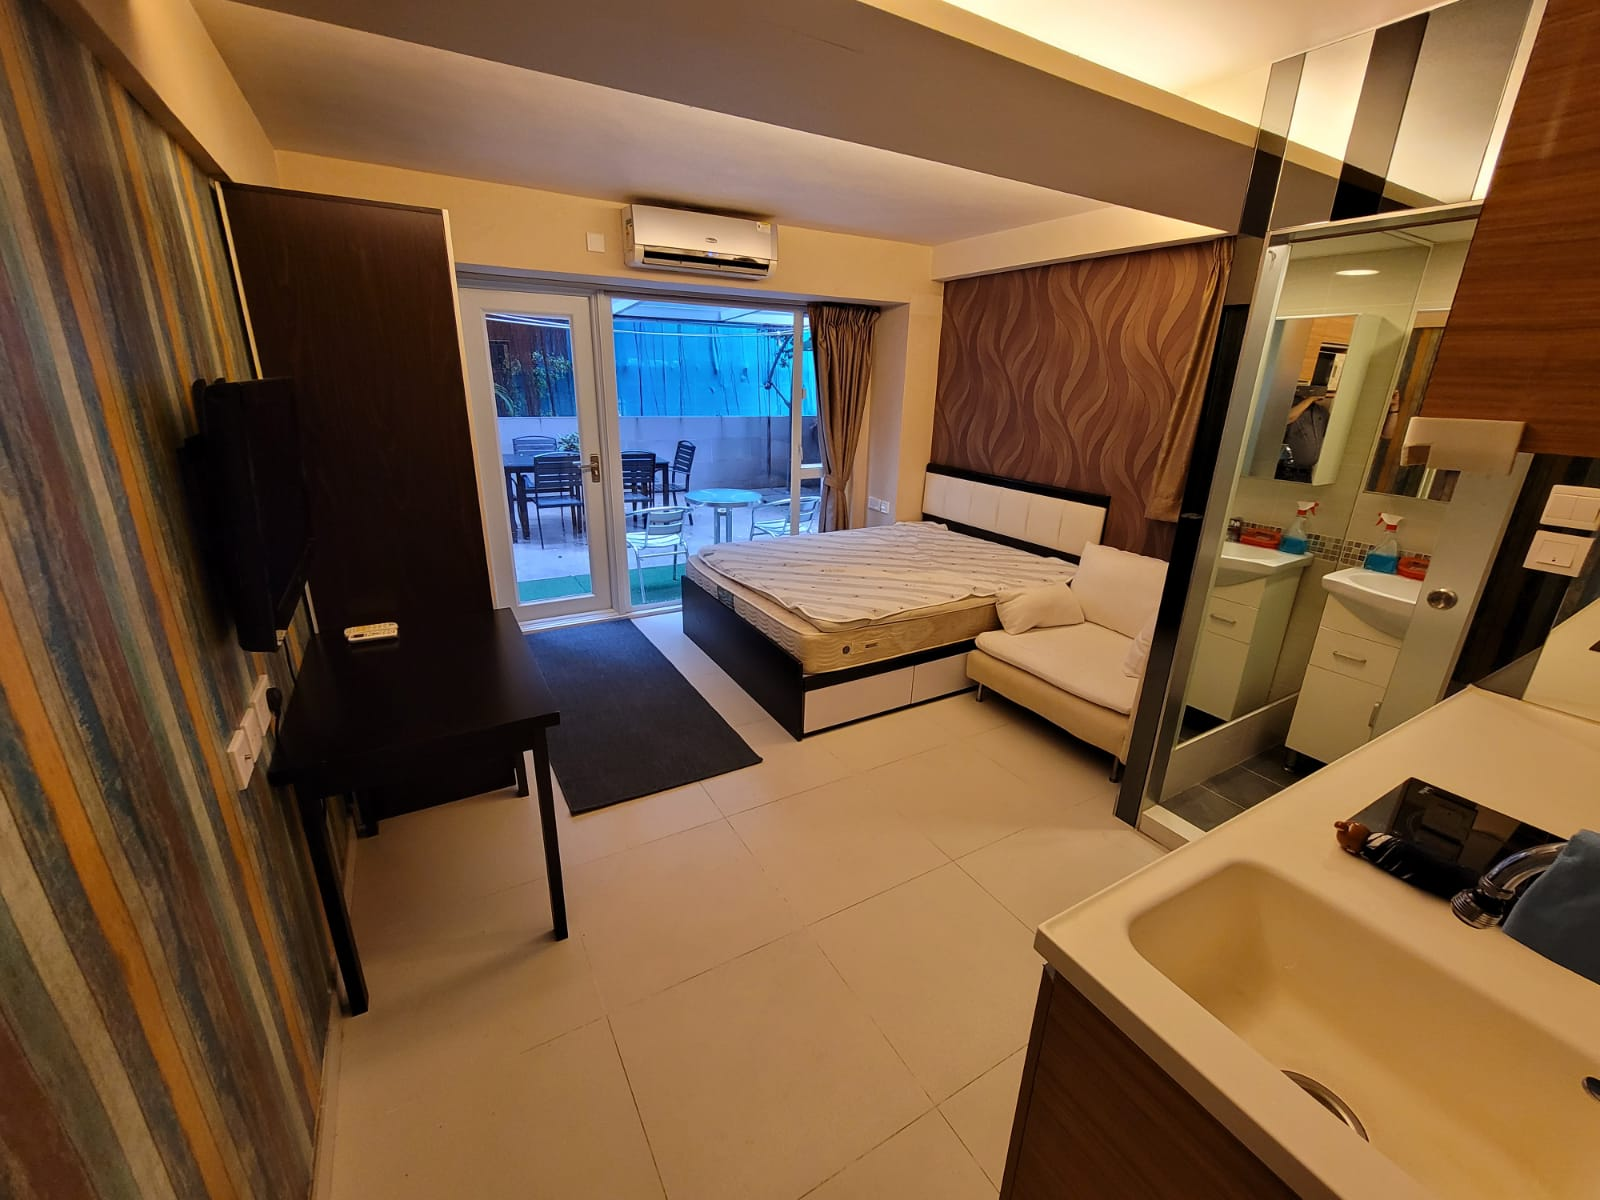 [Western] [Wing Lee Building] 1-Studio Unit /w big terrace garden, furnished & full furniture + appliances, close to MTR